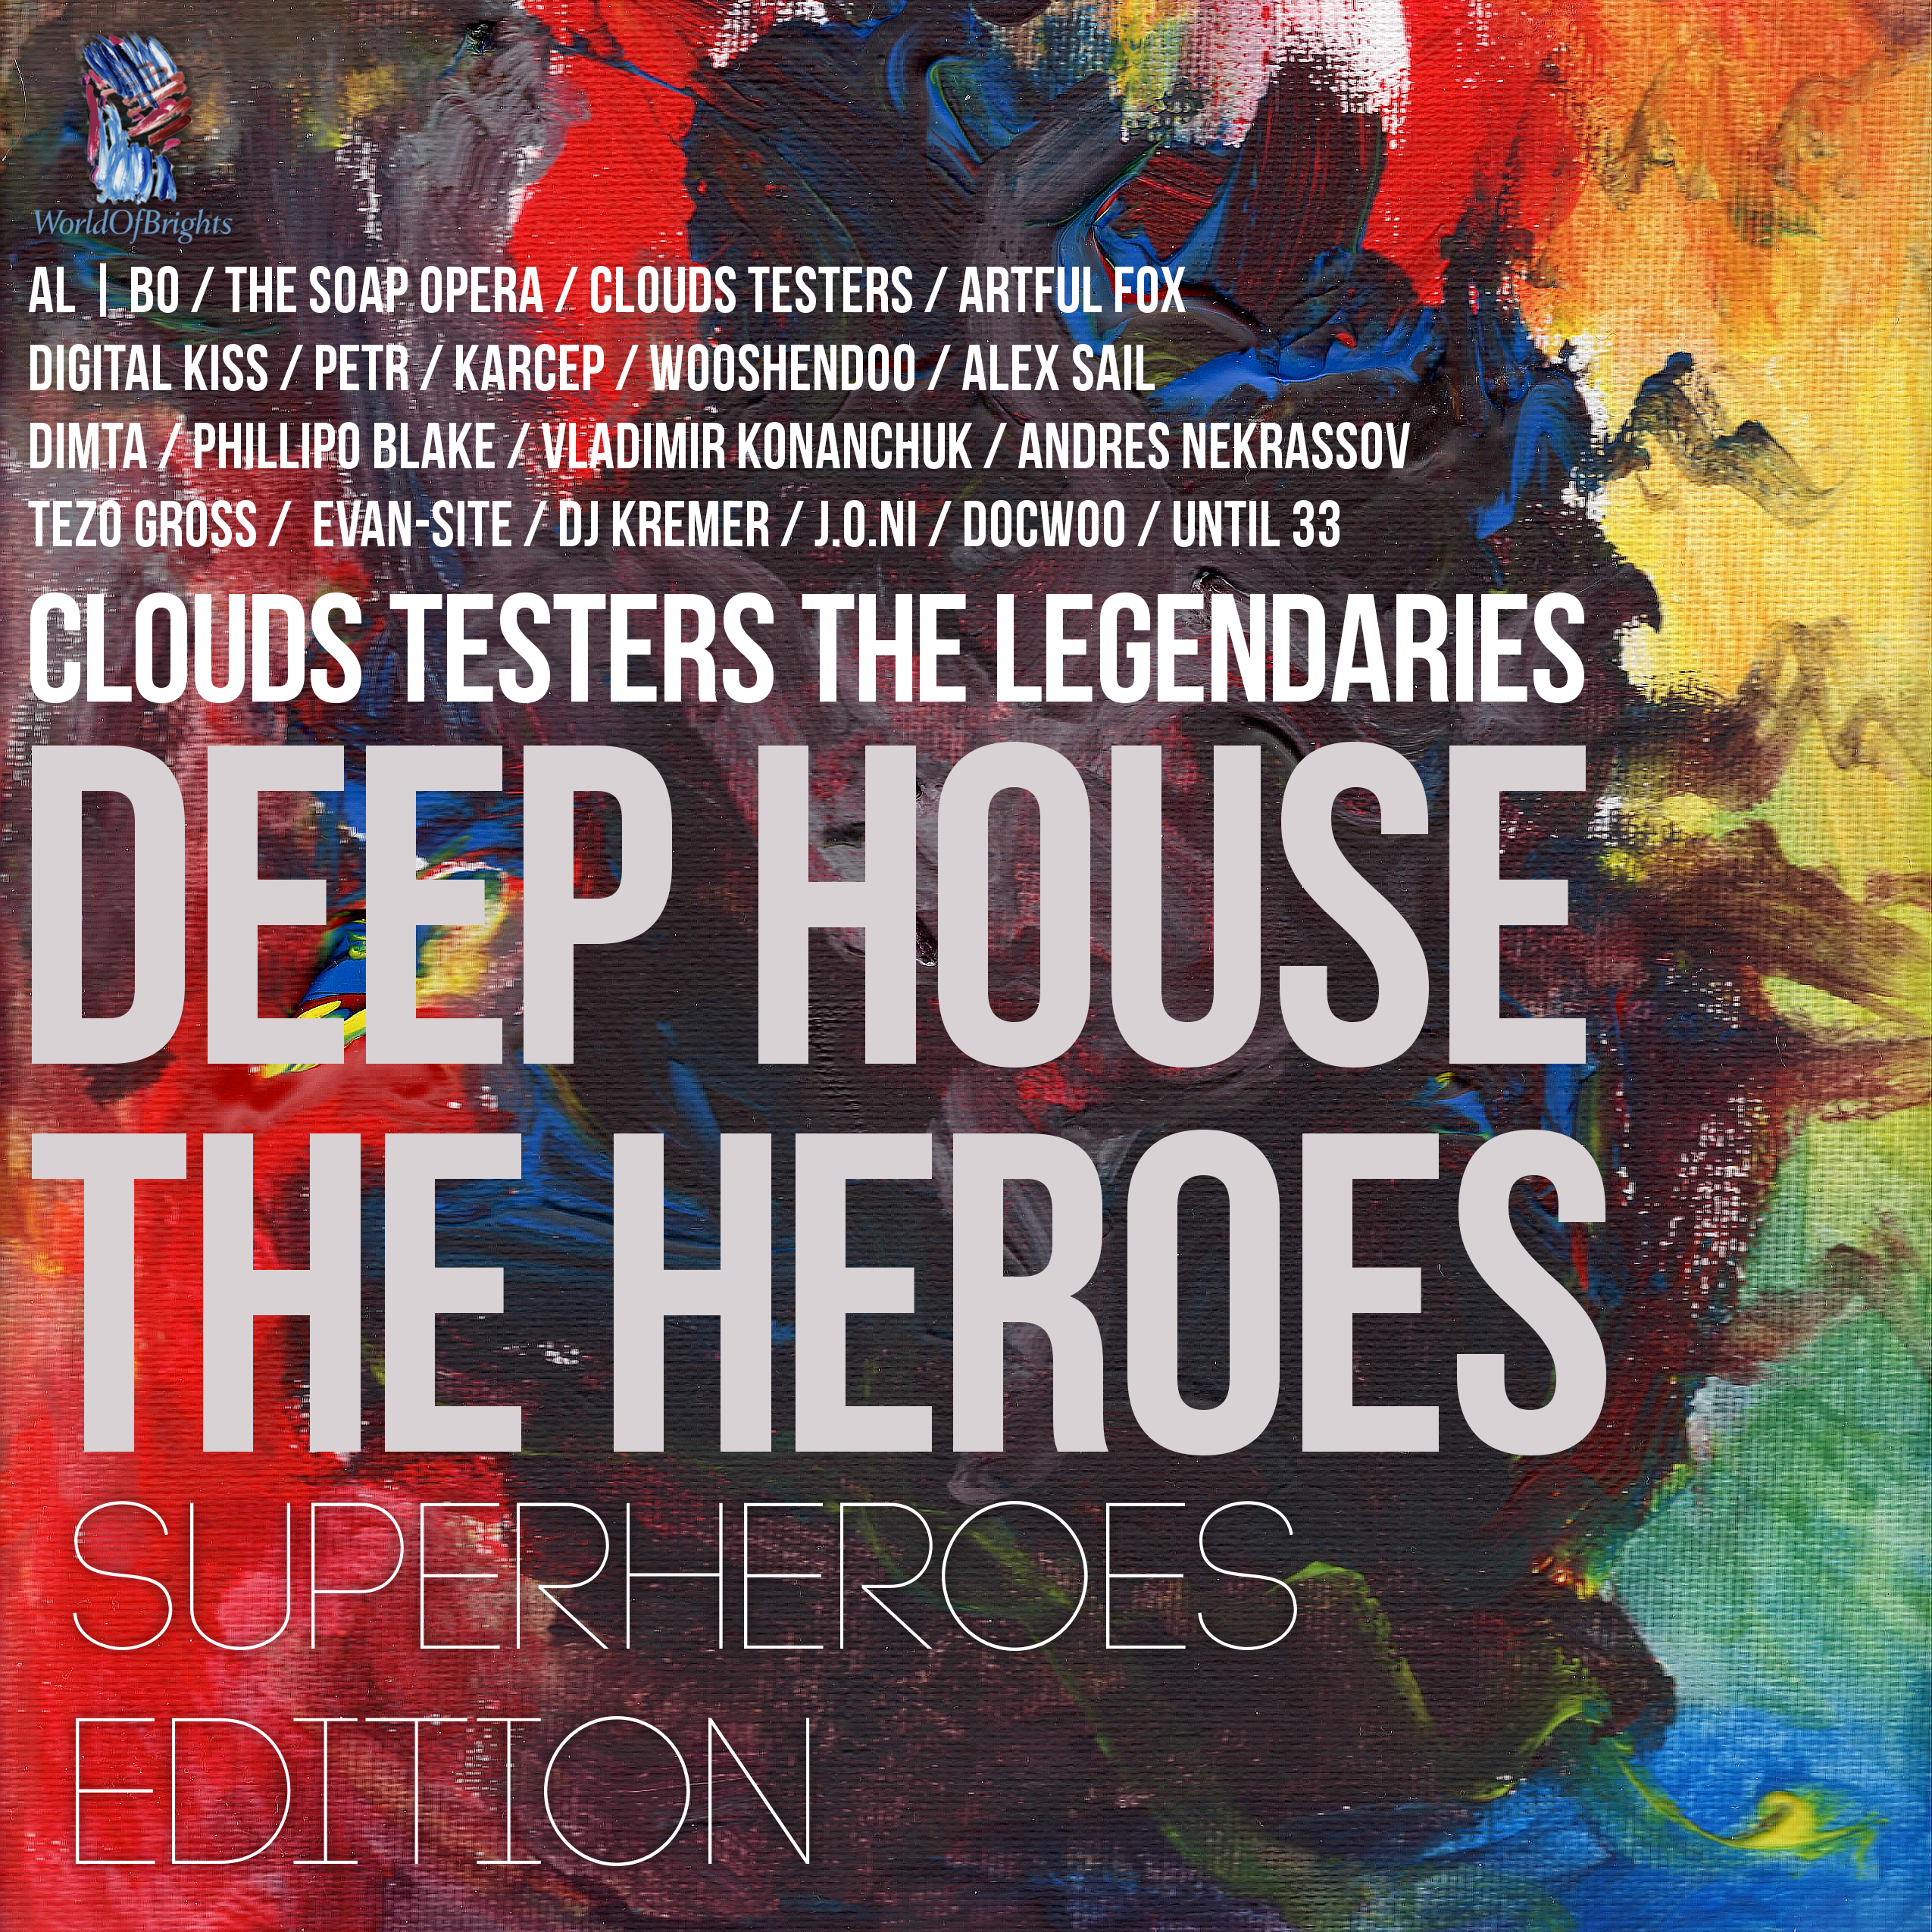 al l bo, Clouds Testers - Deep House The Heroes Vol. III: SuperHeroes Edition by WorldOfBrights